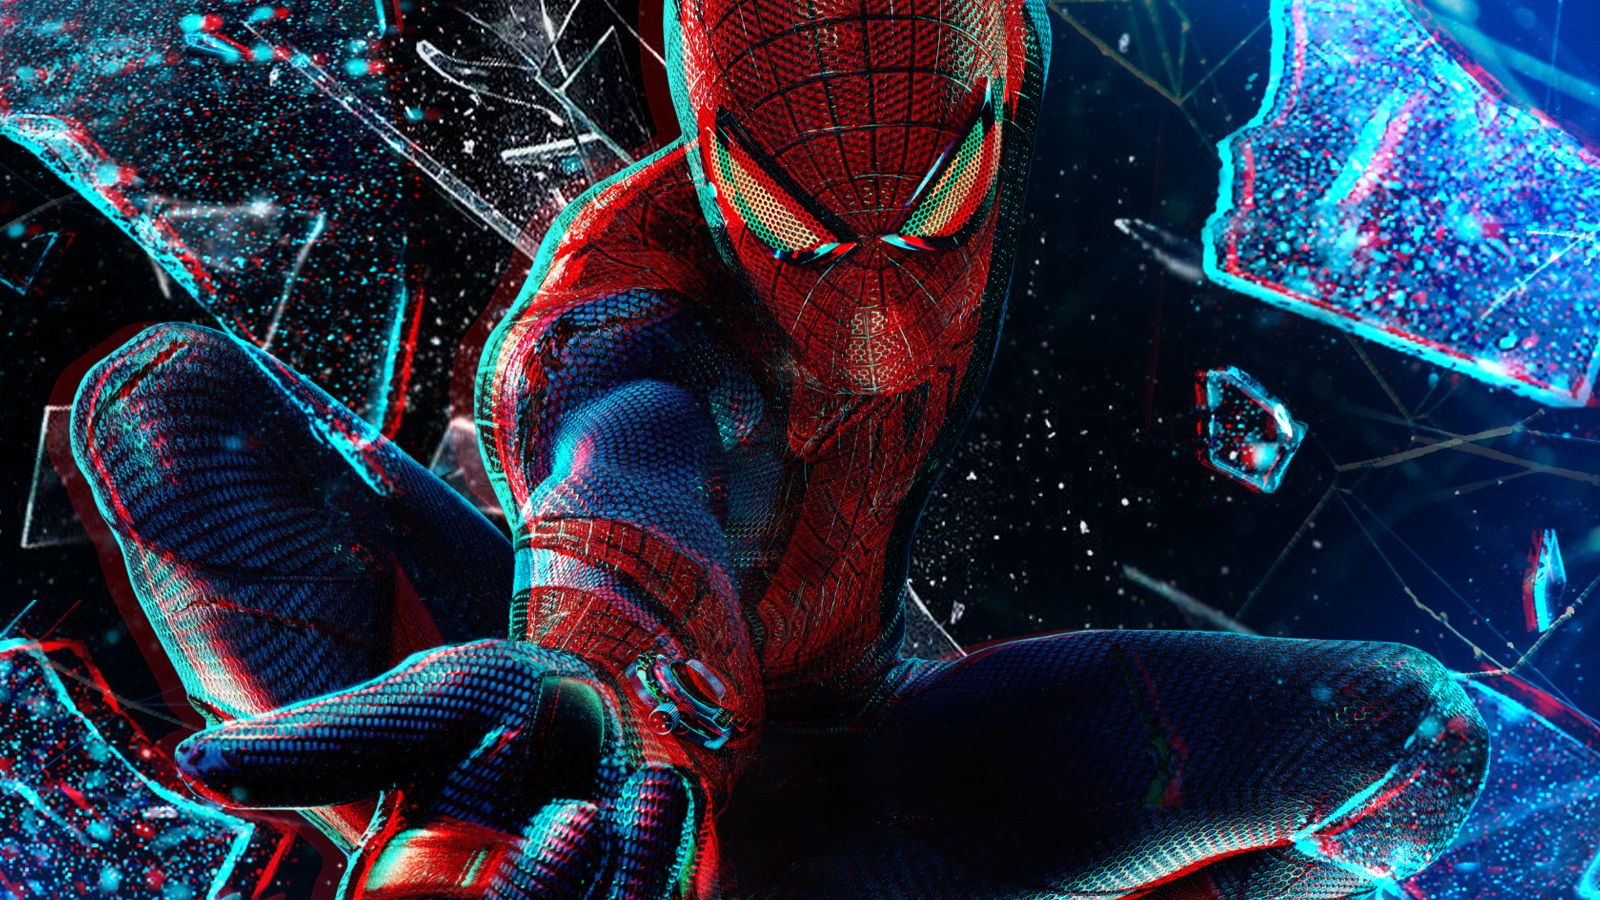 Free Download The Amazing Spider Man 3d 4k Hd Desktop